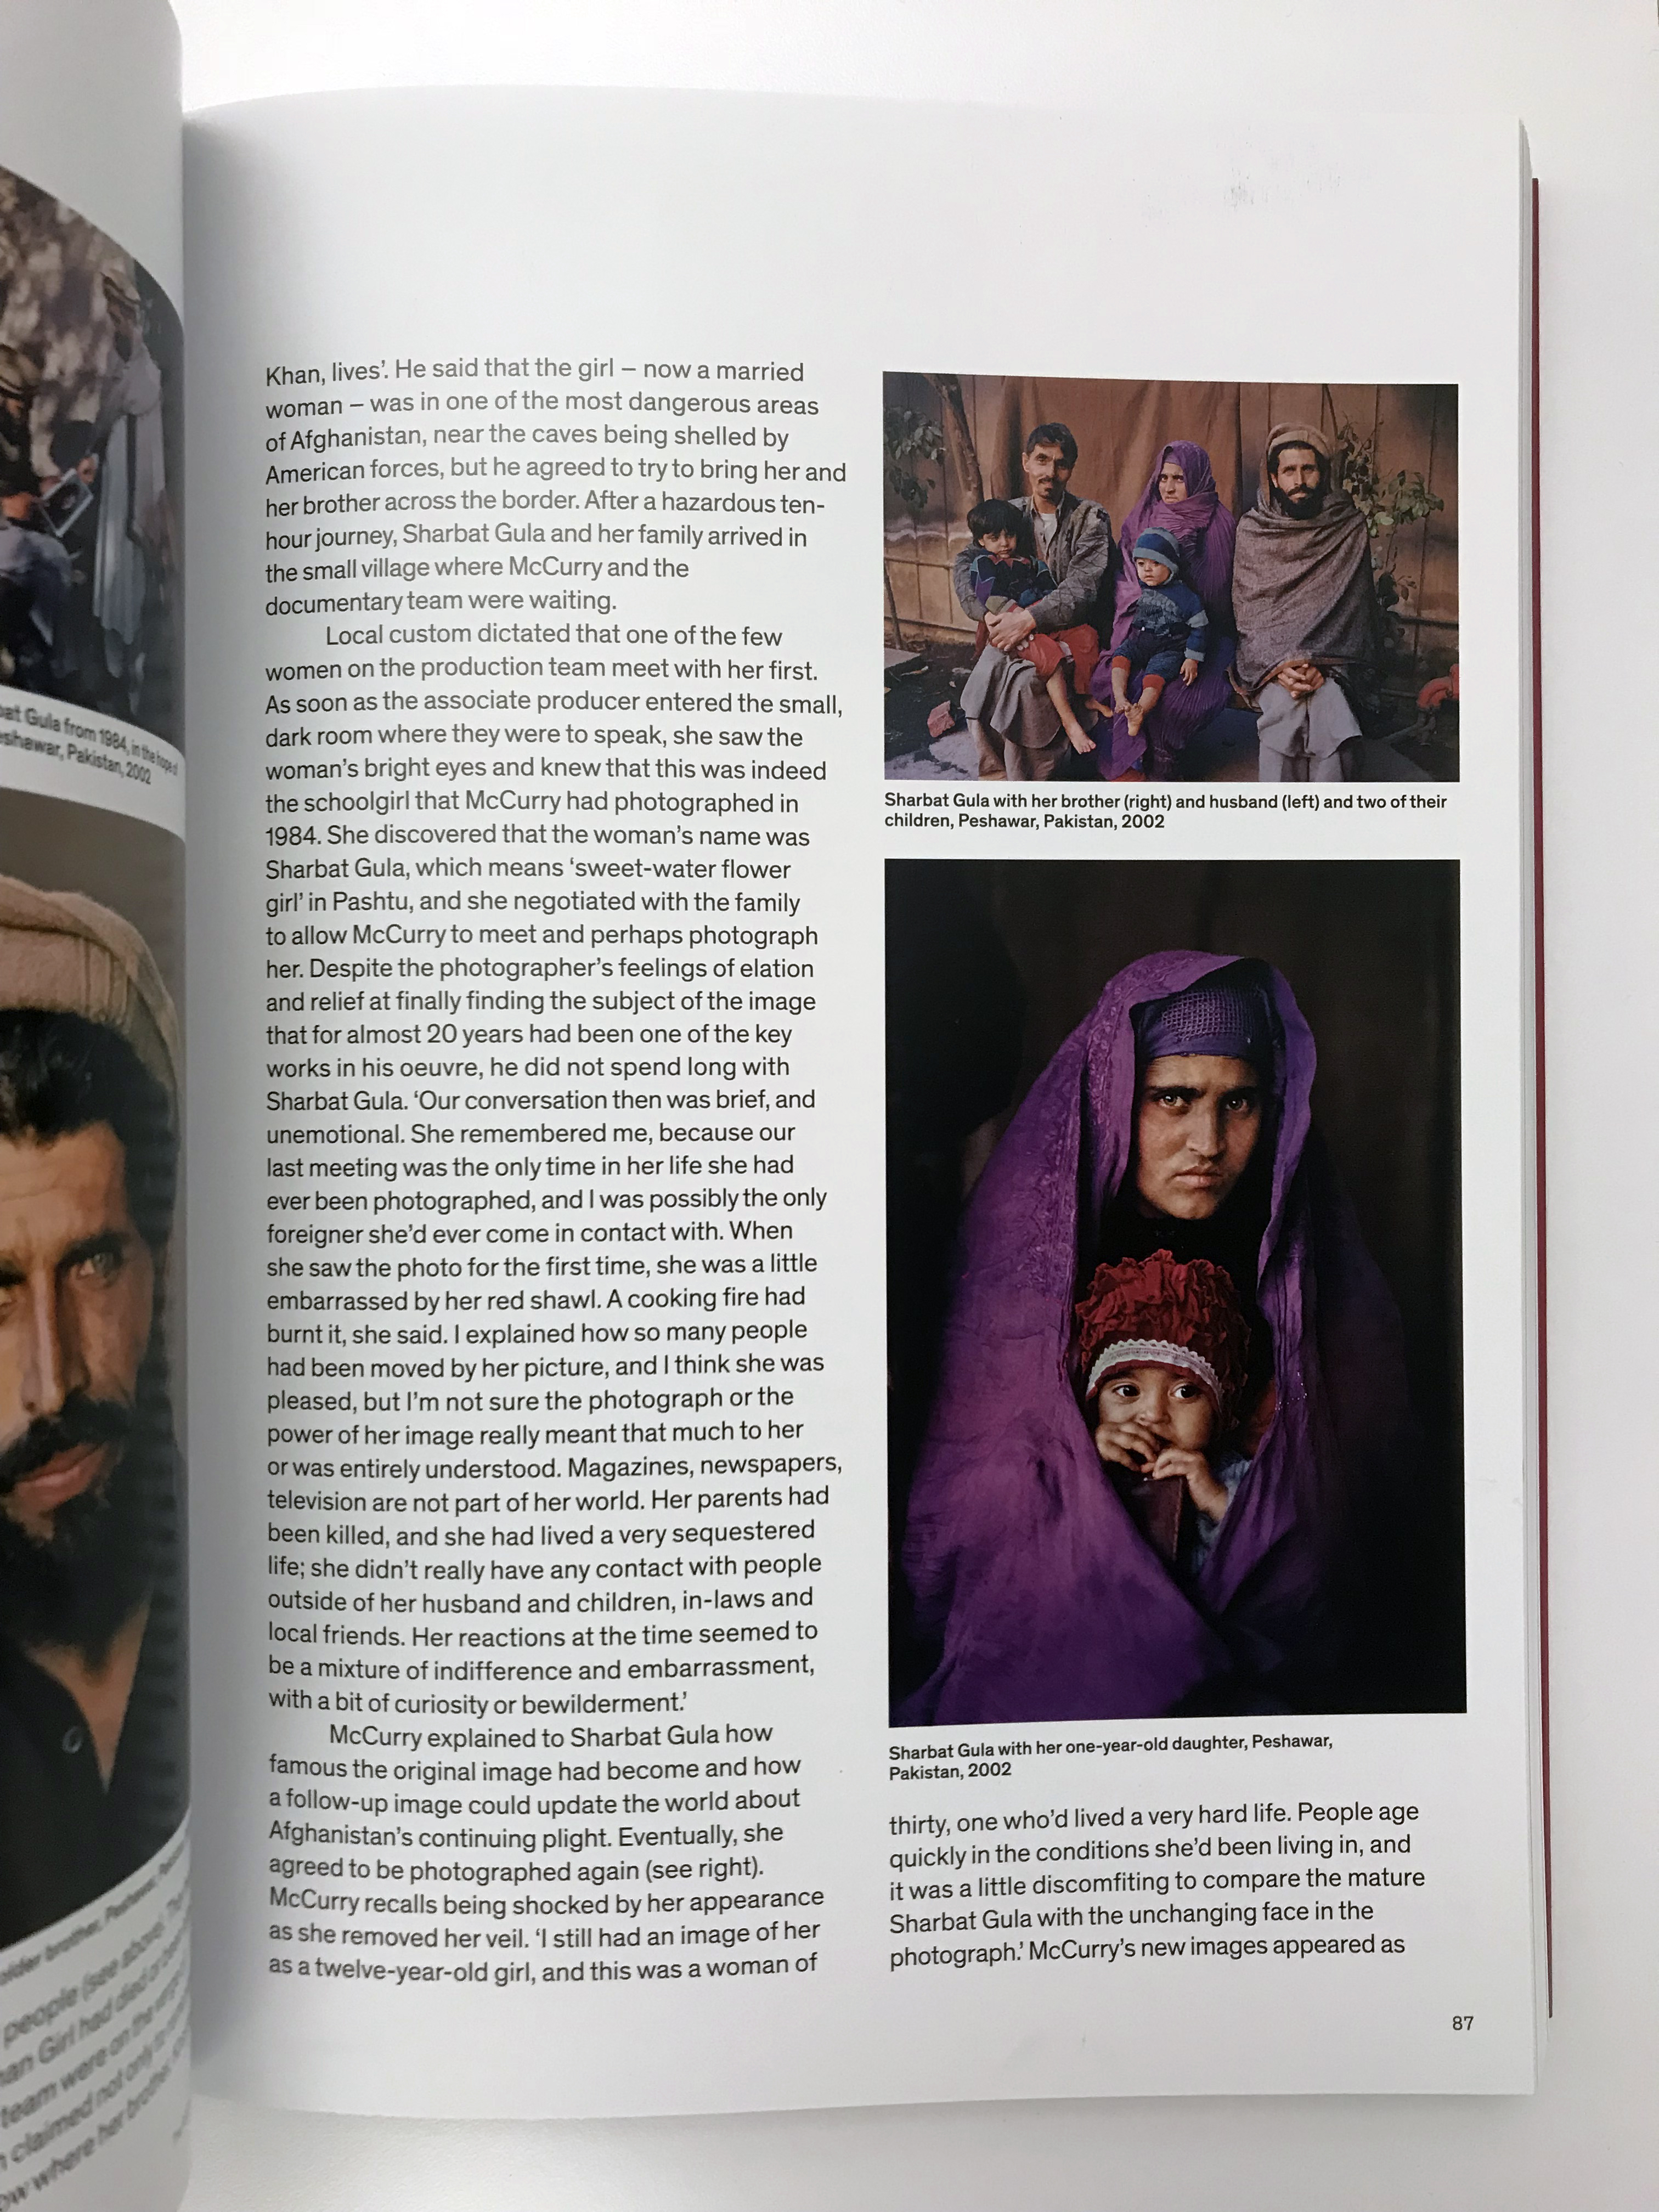 A look inside Steve McCurry Untold, showing the 2002 portrait of Sharbat  Gula with her child.